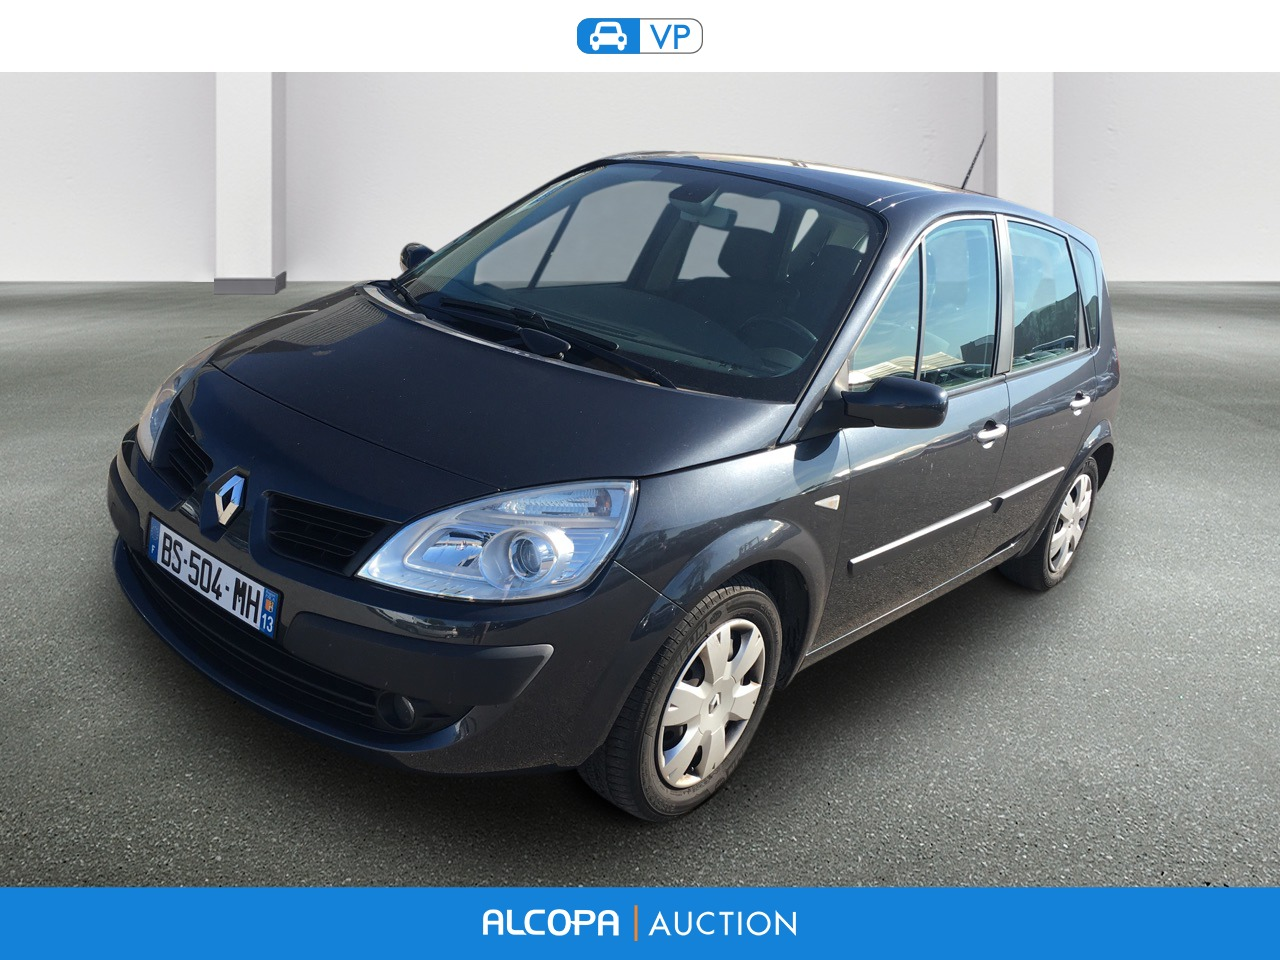 renault scenic ii scenic 1 9 dci 130 expression alcopa auction. Black Bedroom Furniture Sets. Home Design Ideas